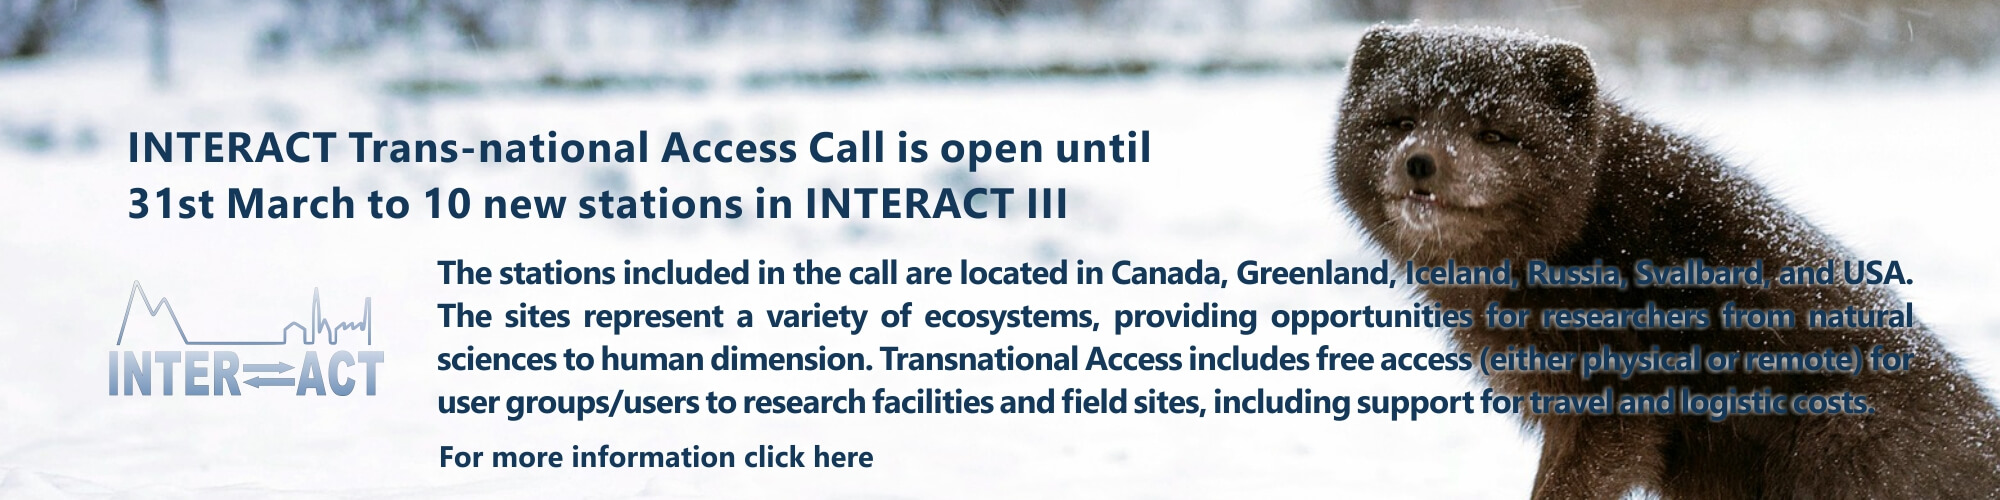 INTERACT trans-national access call 2020